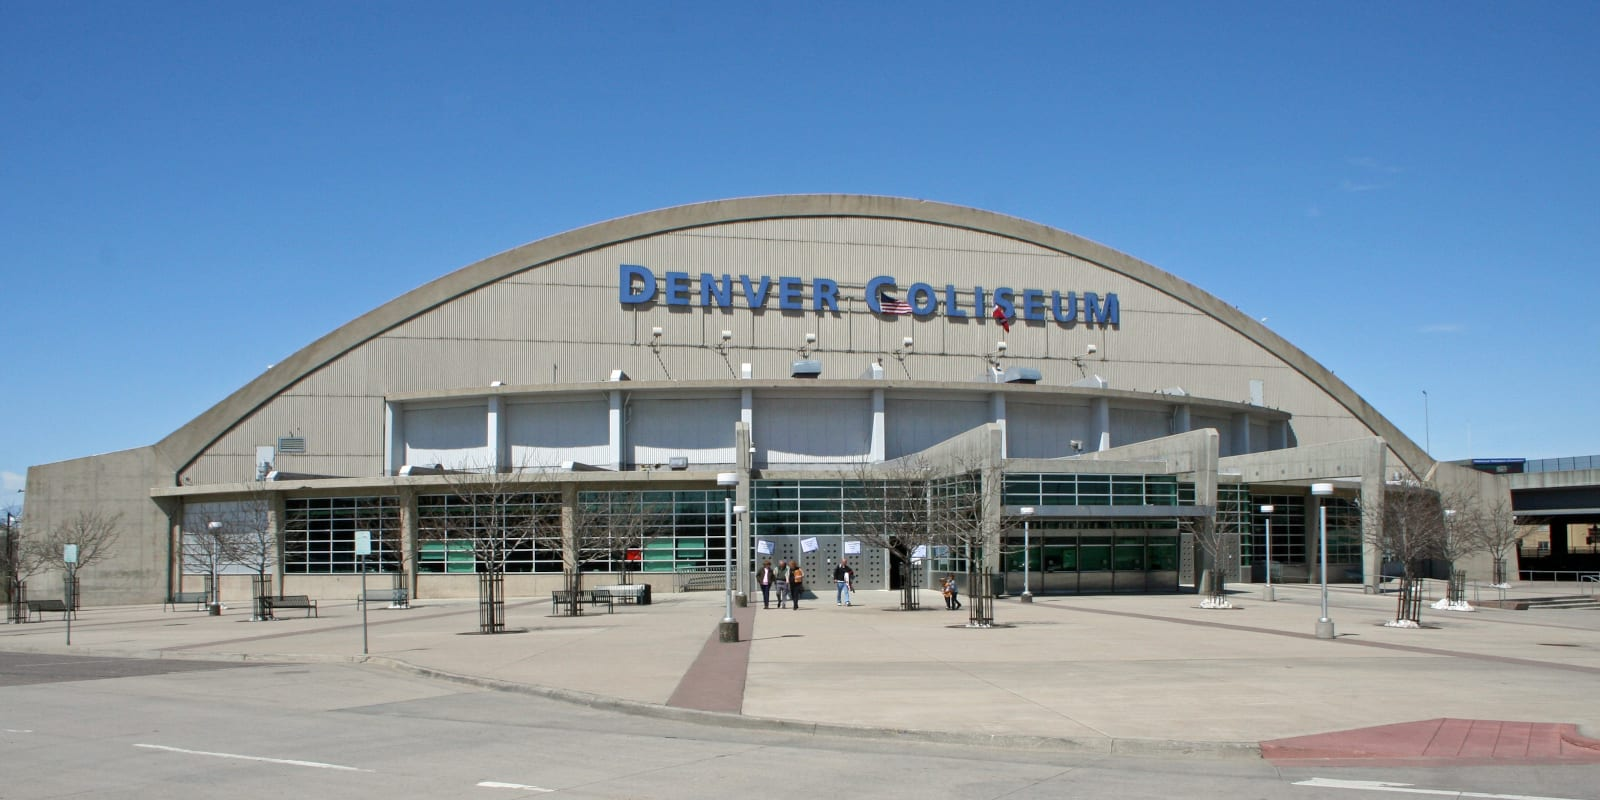 Denver Coliseum in Denver, CO